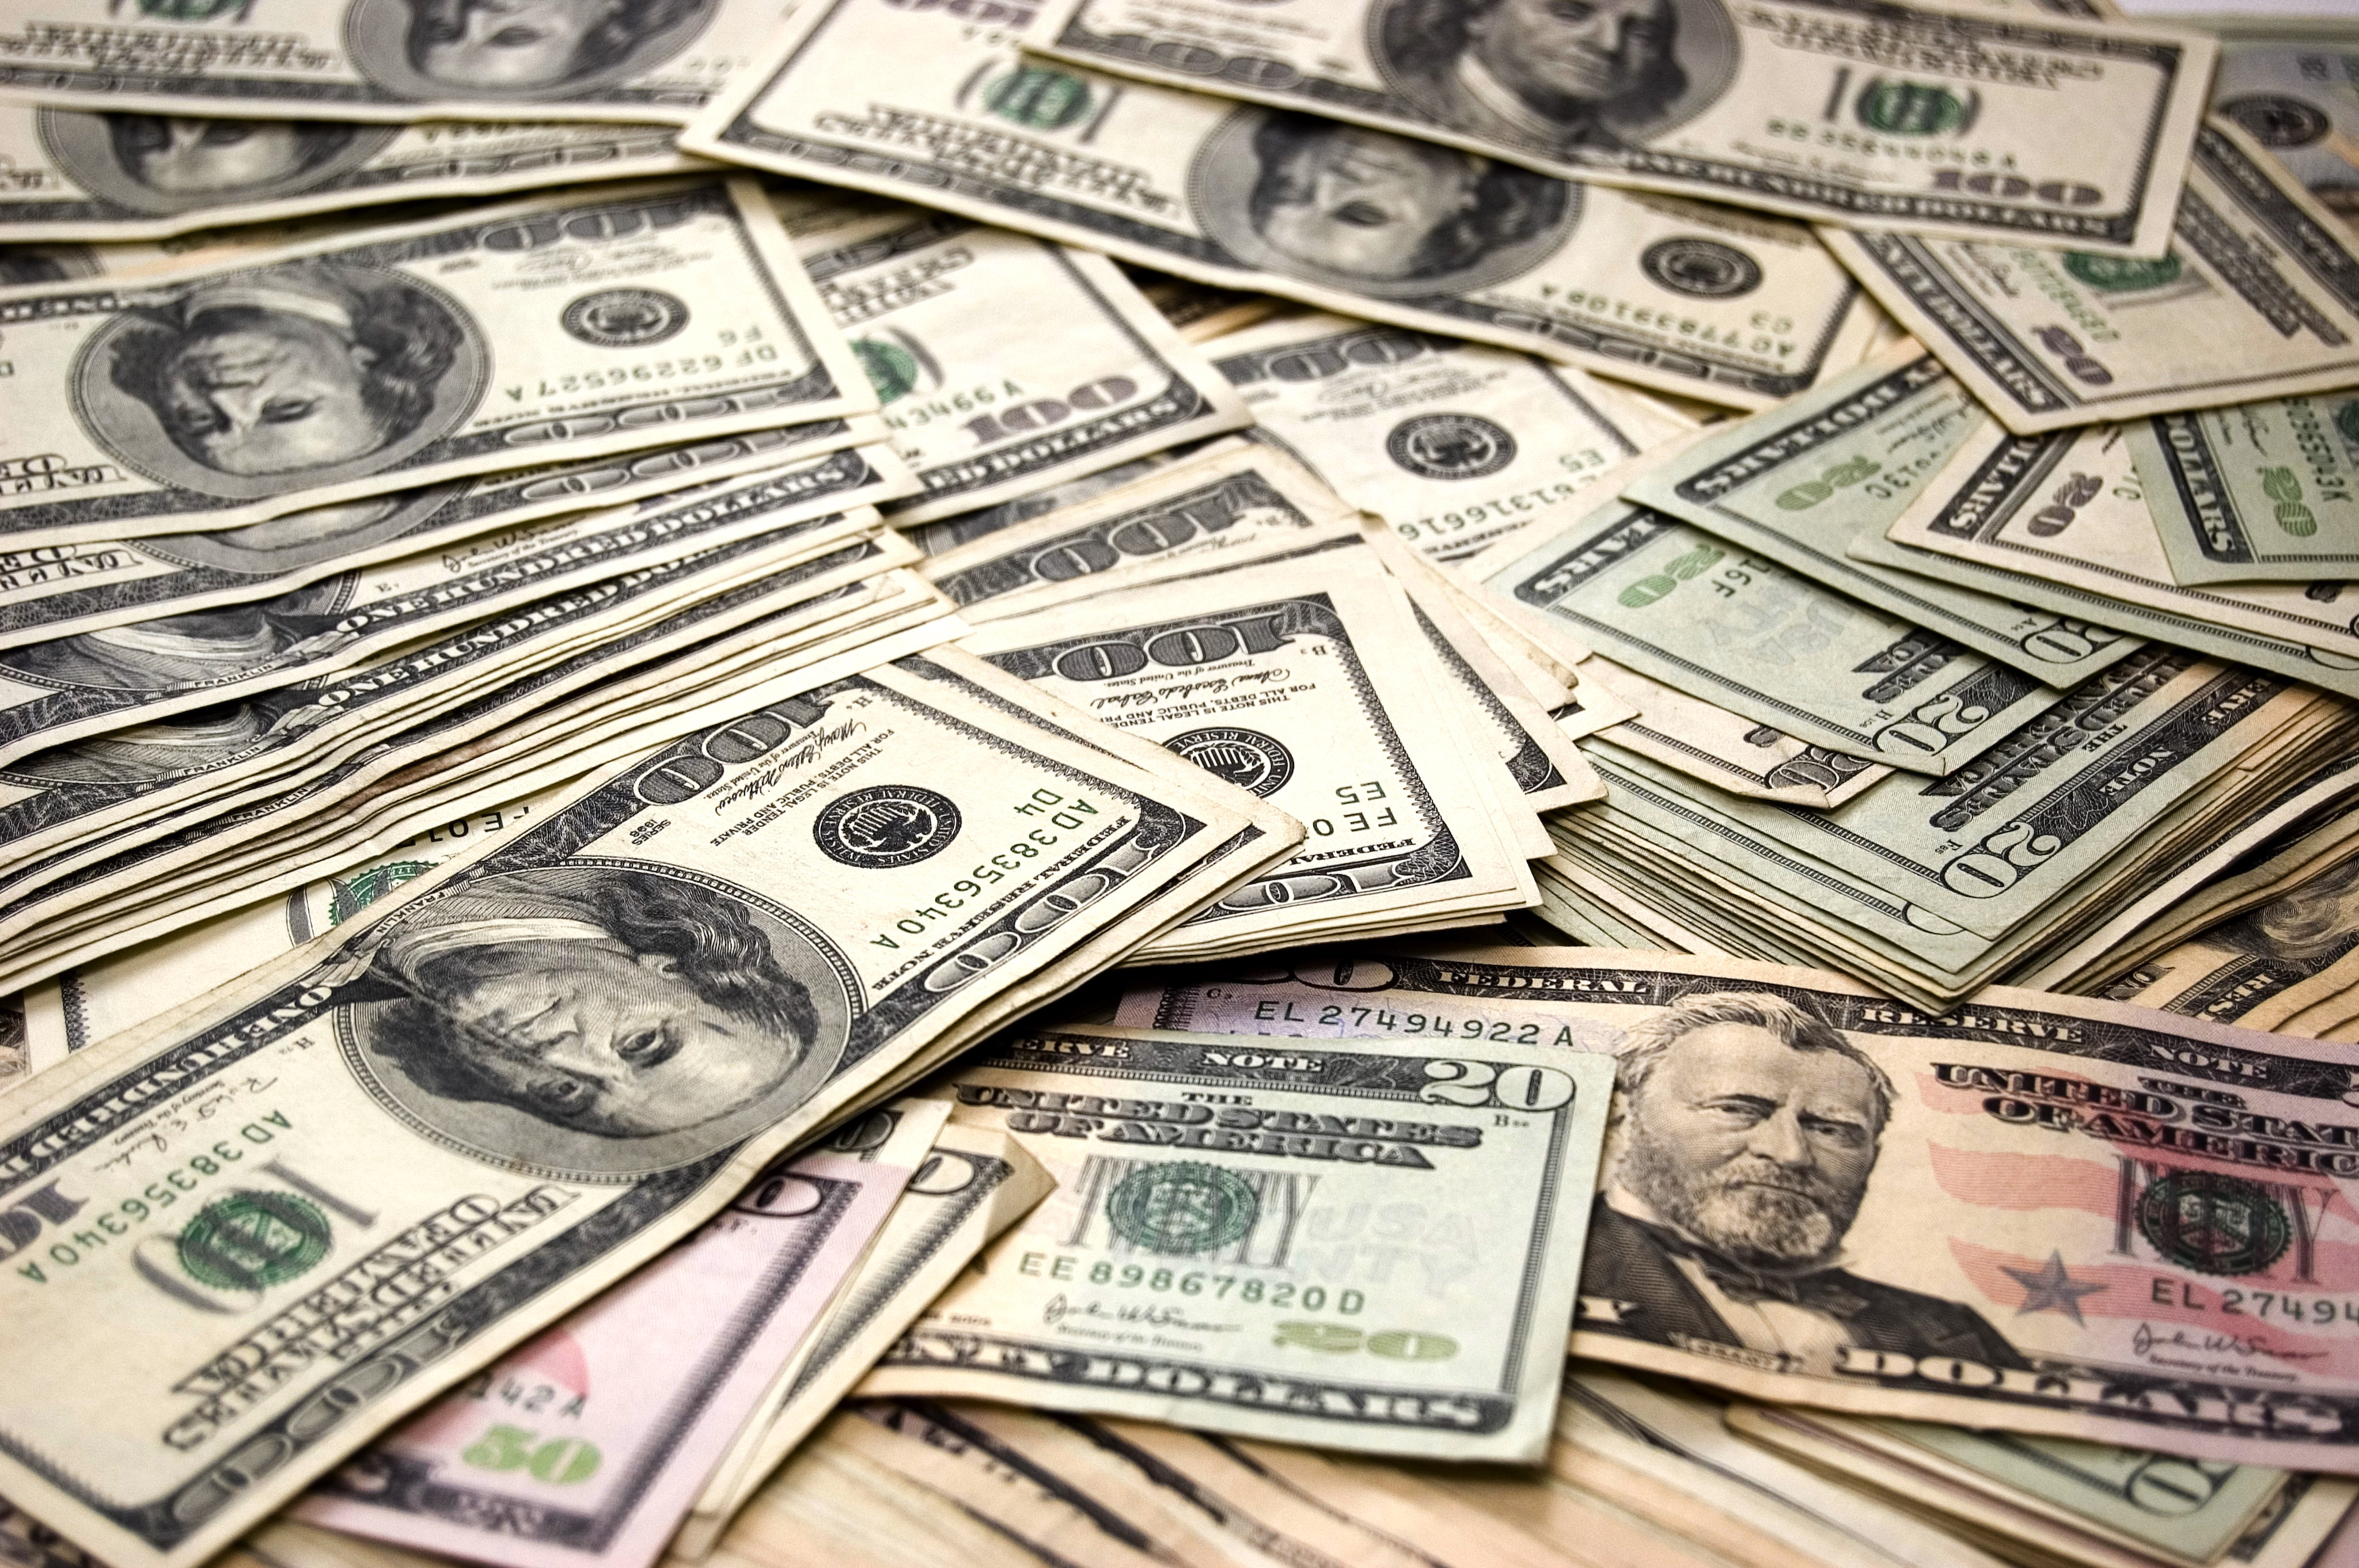 saving or spending essay Sixty-five percent of americans now prefer saving money to spending it, continuing a trend that started after the 2008 financial crisis americans have not moved back toward enjoying spending more in gallup's current poll.